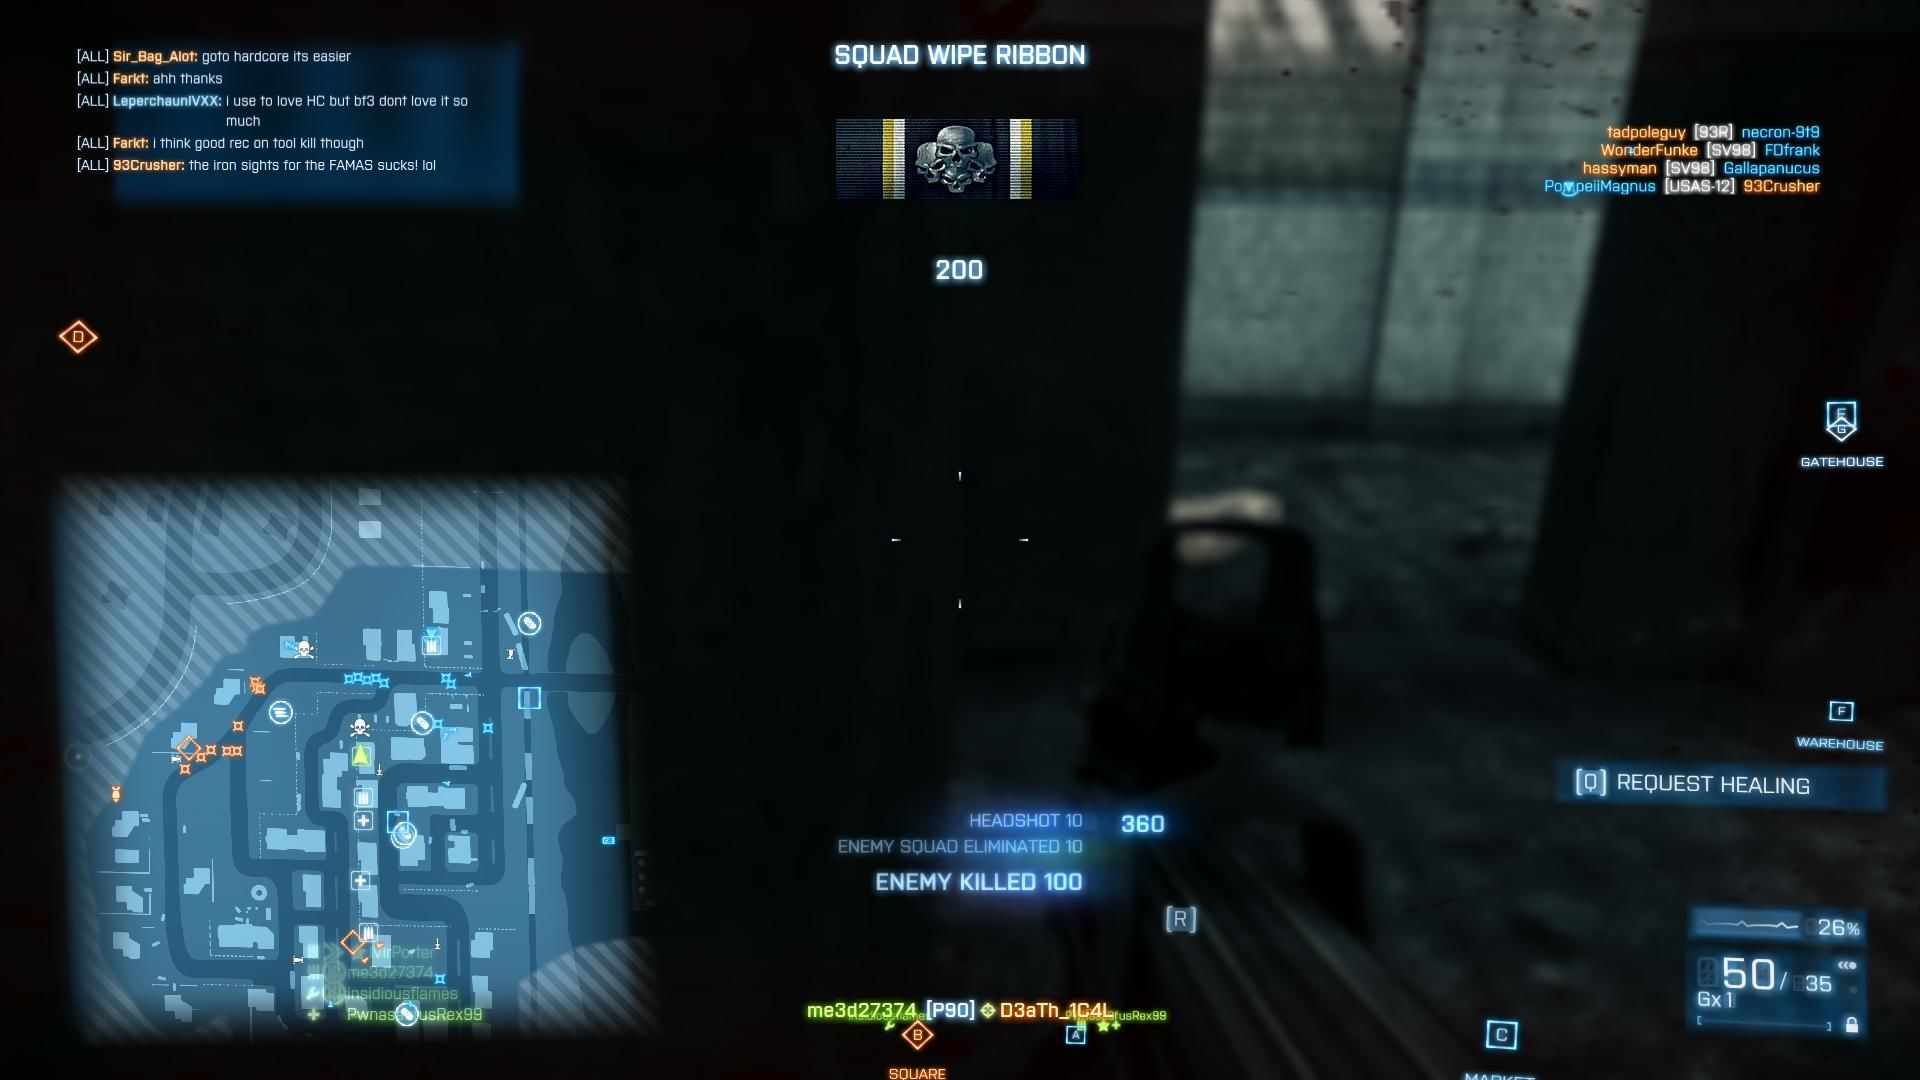 Battlefield 3: Back to Karkand Windows Killed everyone in the squad of four - wipe ribbon